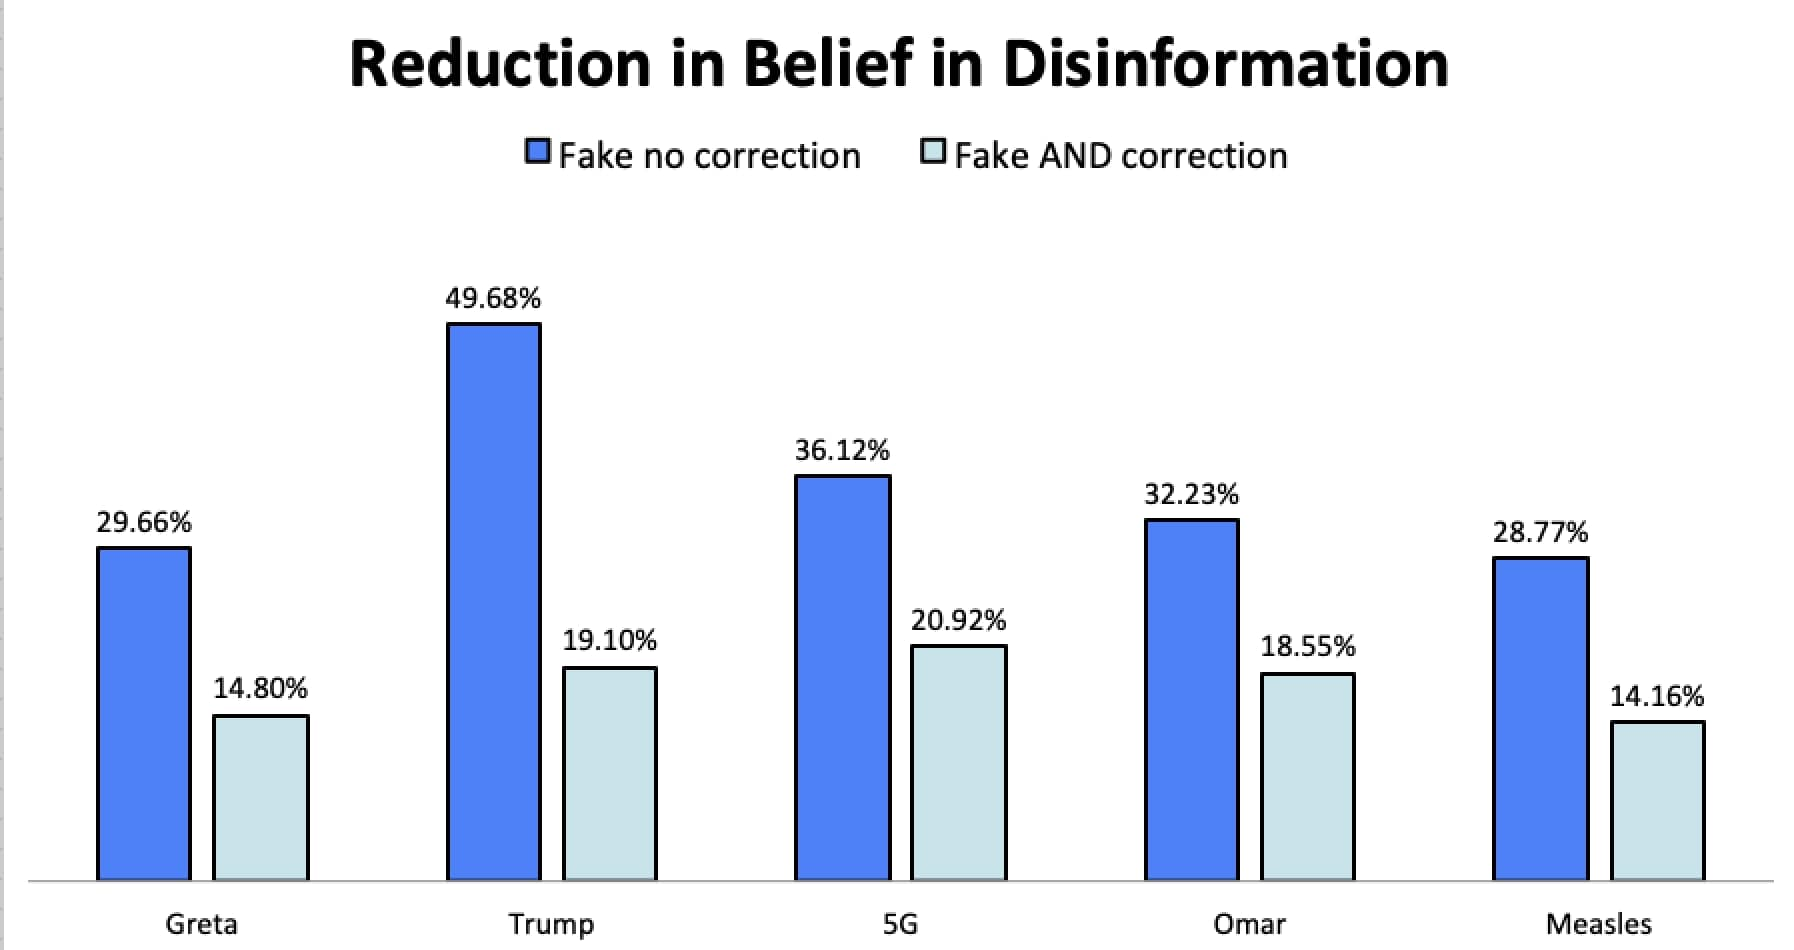 Reduction in Belief in Disinformation